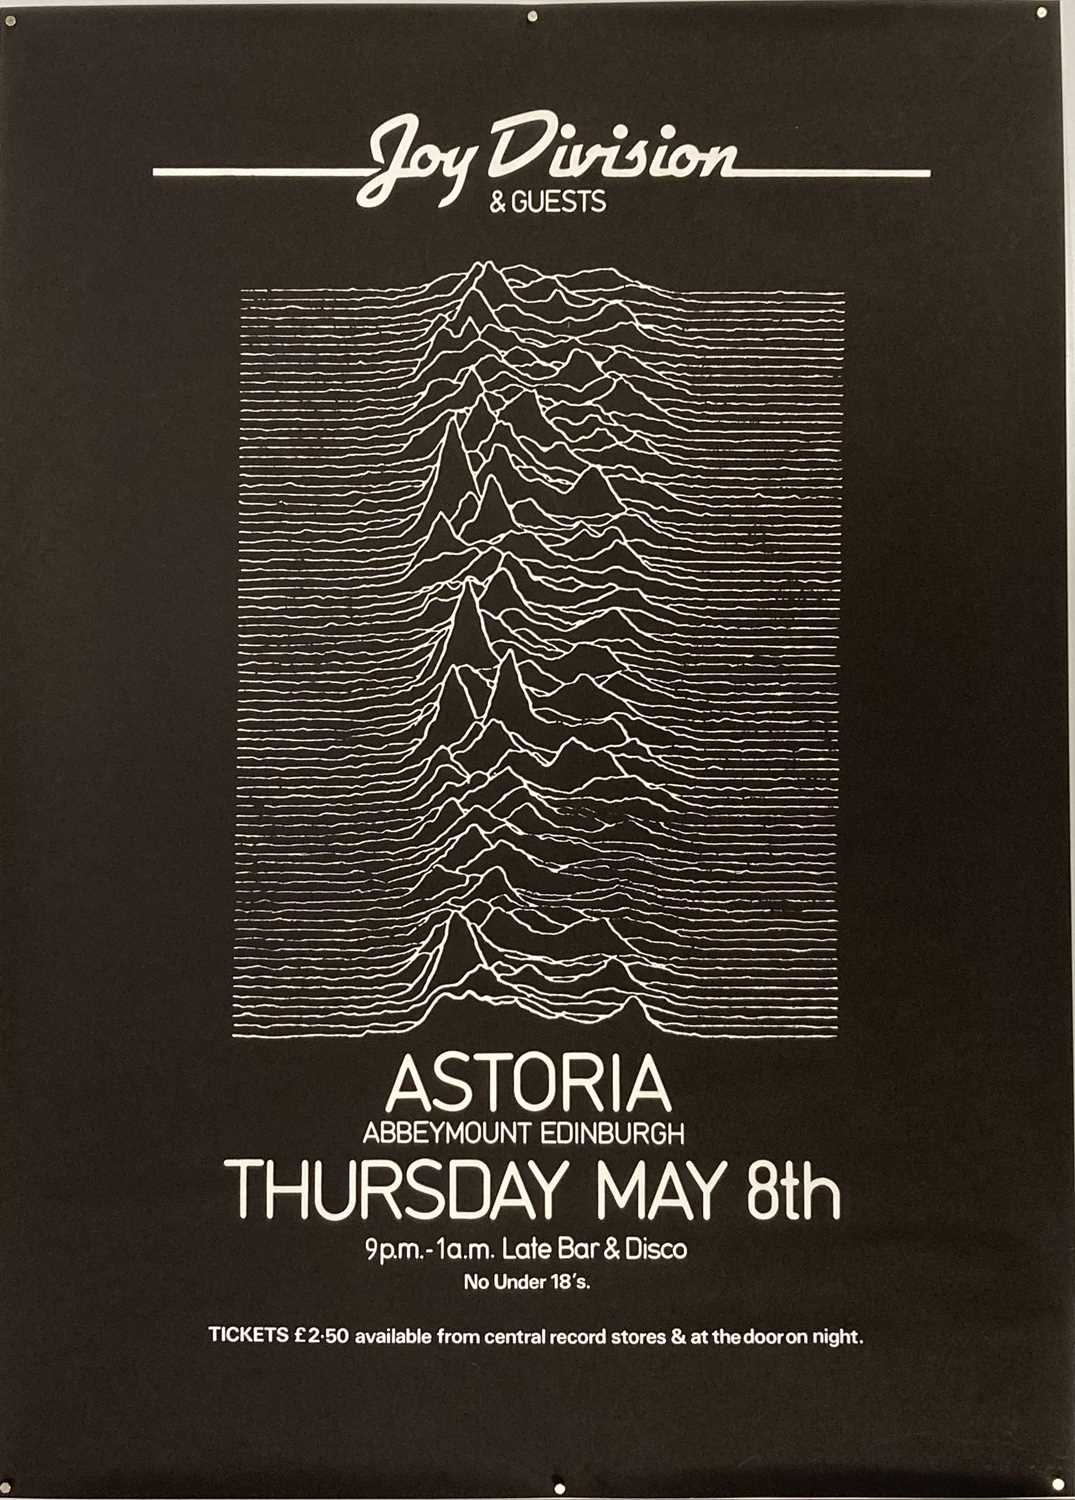 JOY DIVISION - ASTORIA EDINBURGH 1980 - CANCELLED CONCERT POSTER